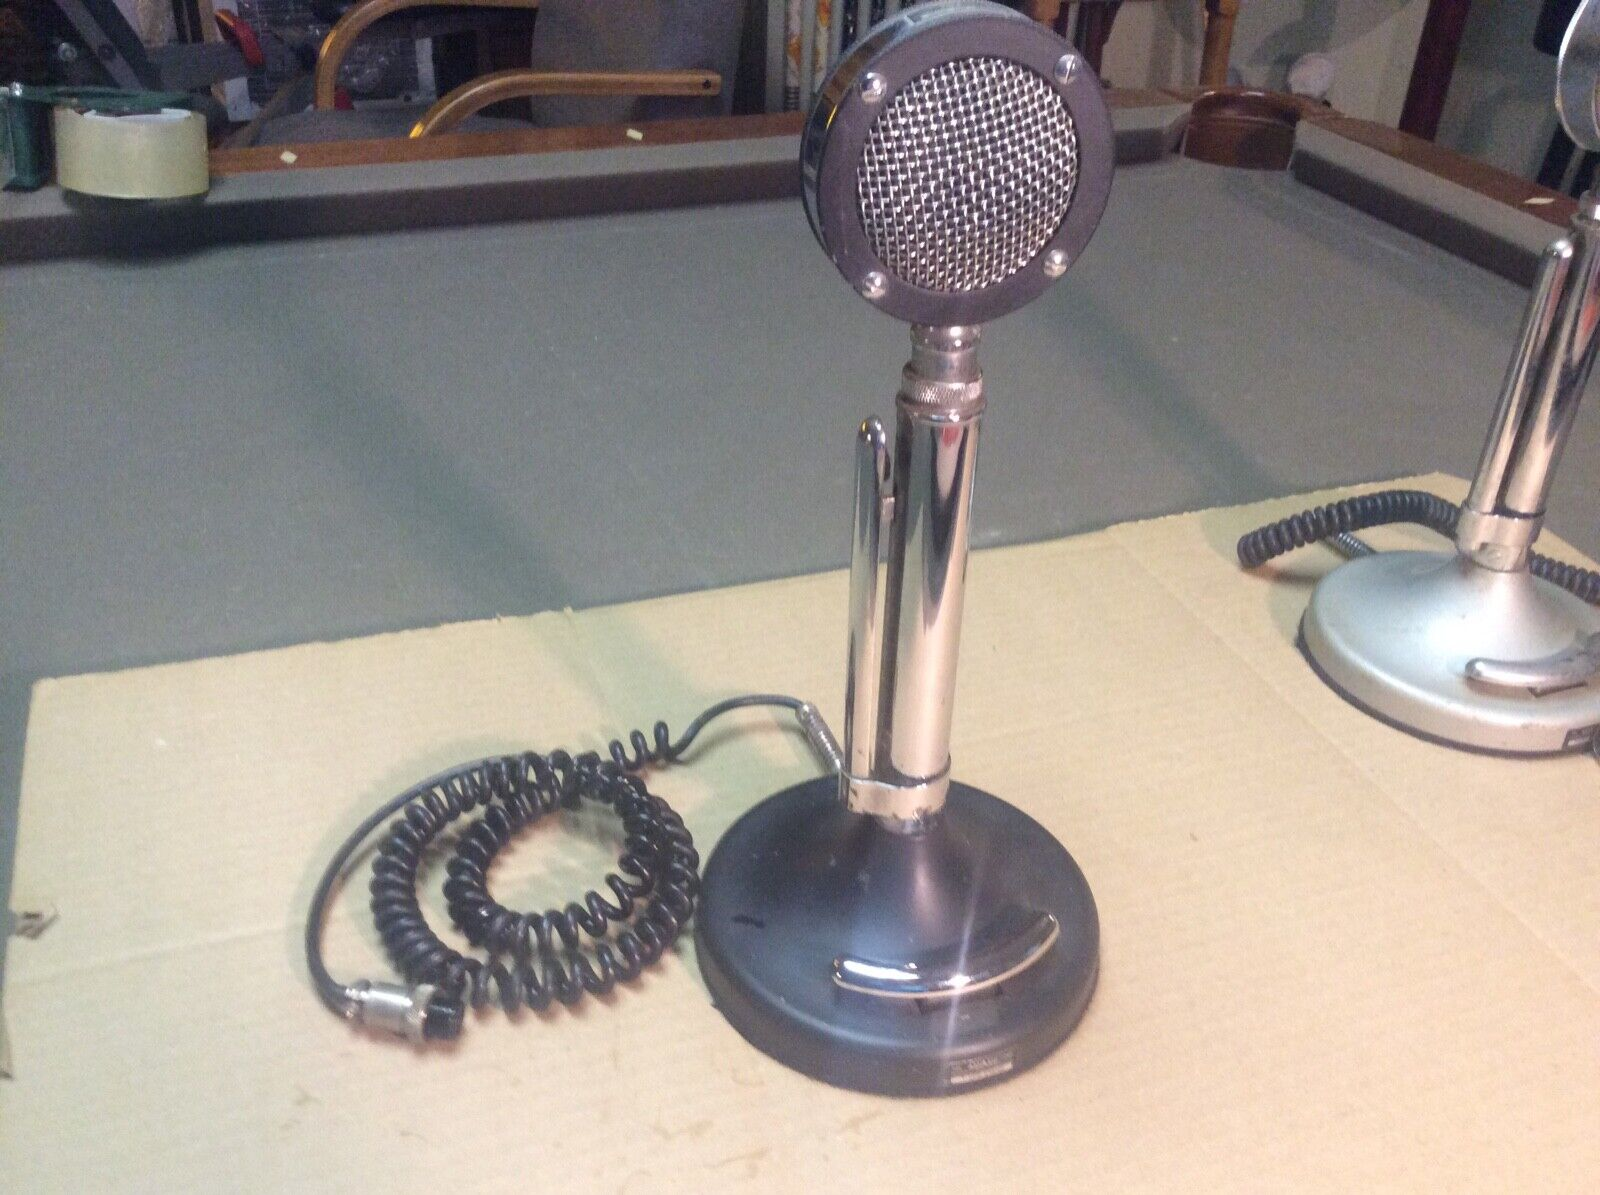 Astatic D-104 microphone with T-UP9 Stand, 4 pin. Buy it now for 85.00